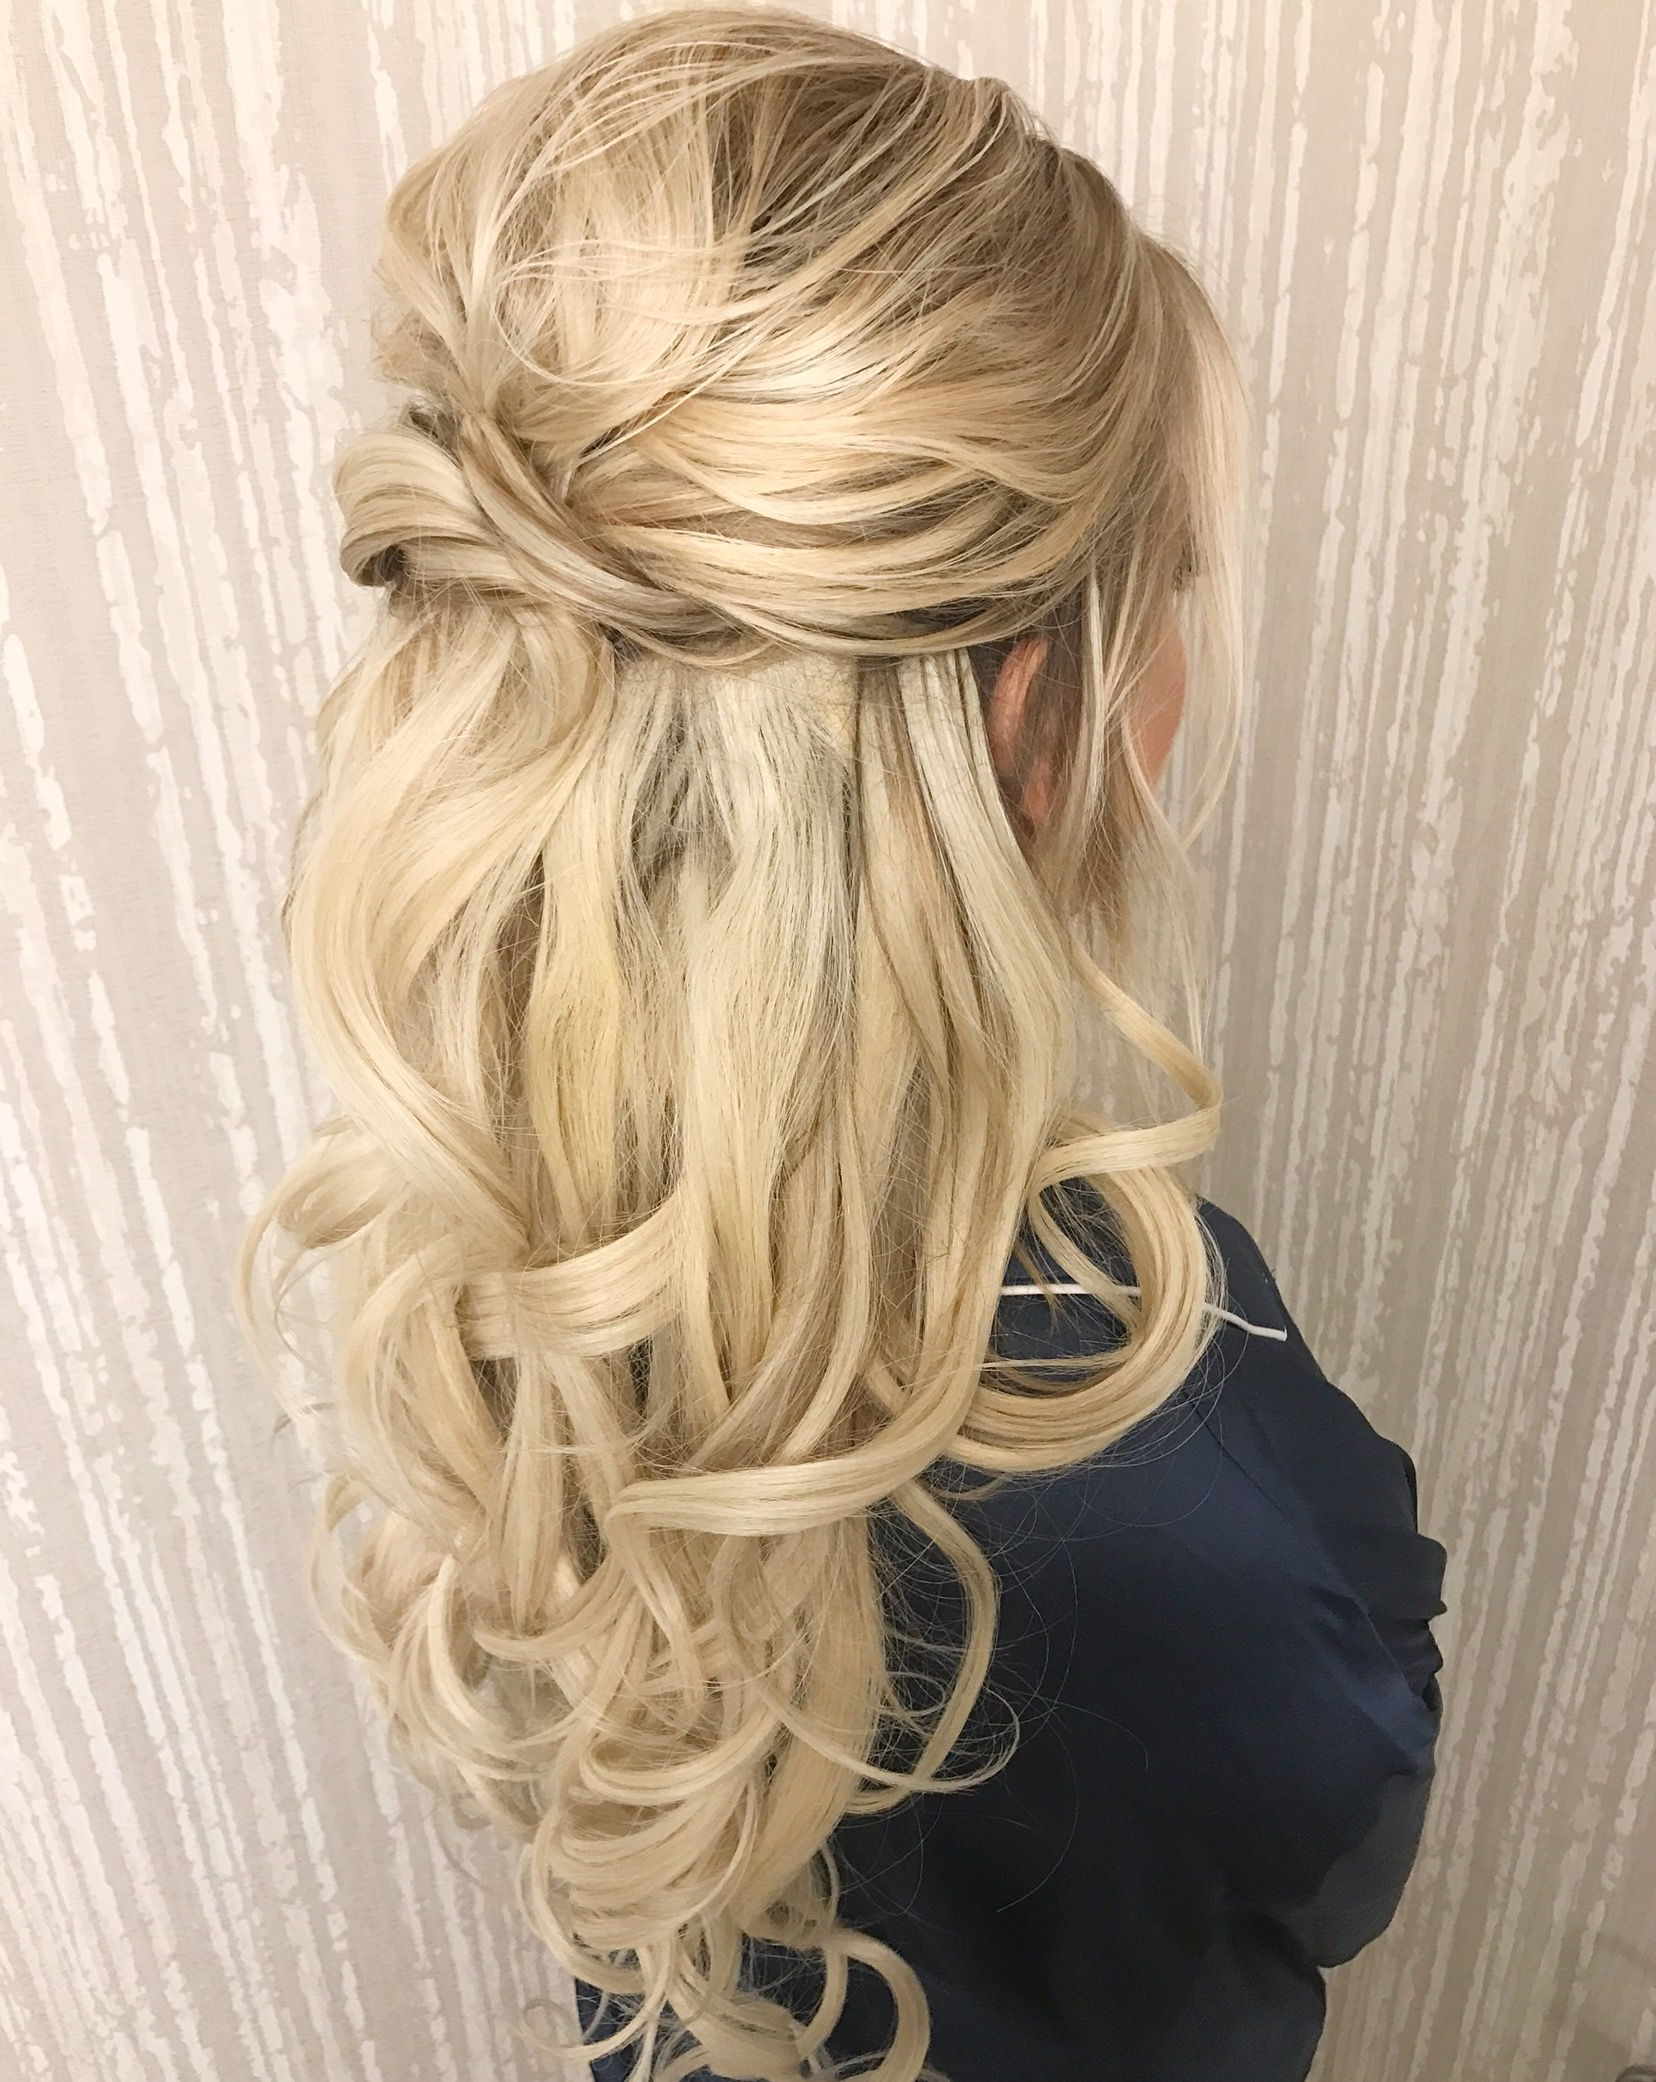 Most Recent Wedding Half Up Medium Hairstyles With Bridesmaid Hairstyles Medium Length Hair Half Up Images Best Down (View 12 of 20)